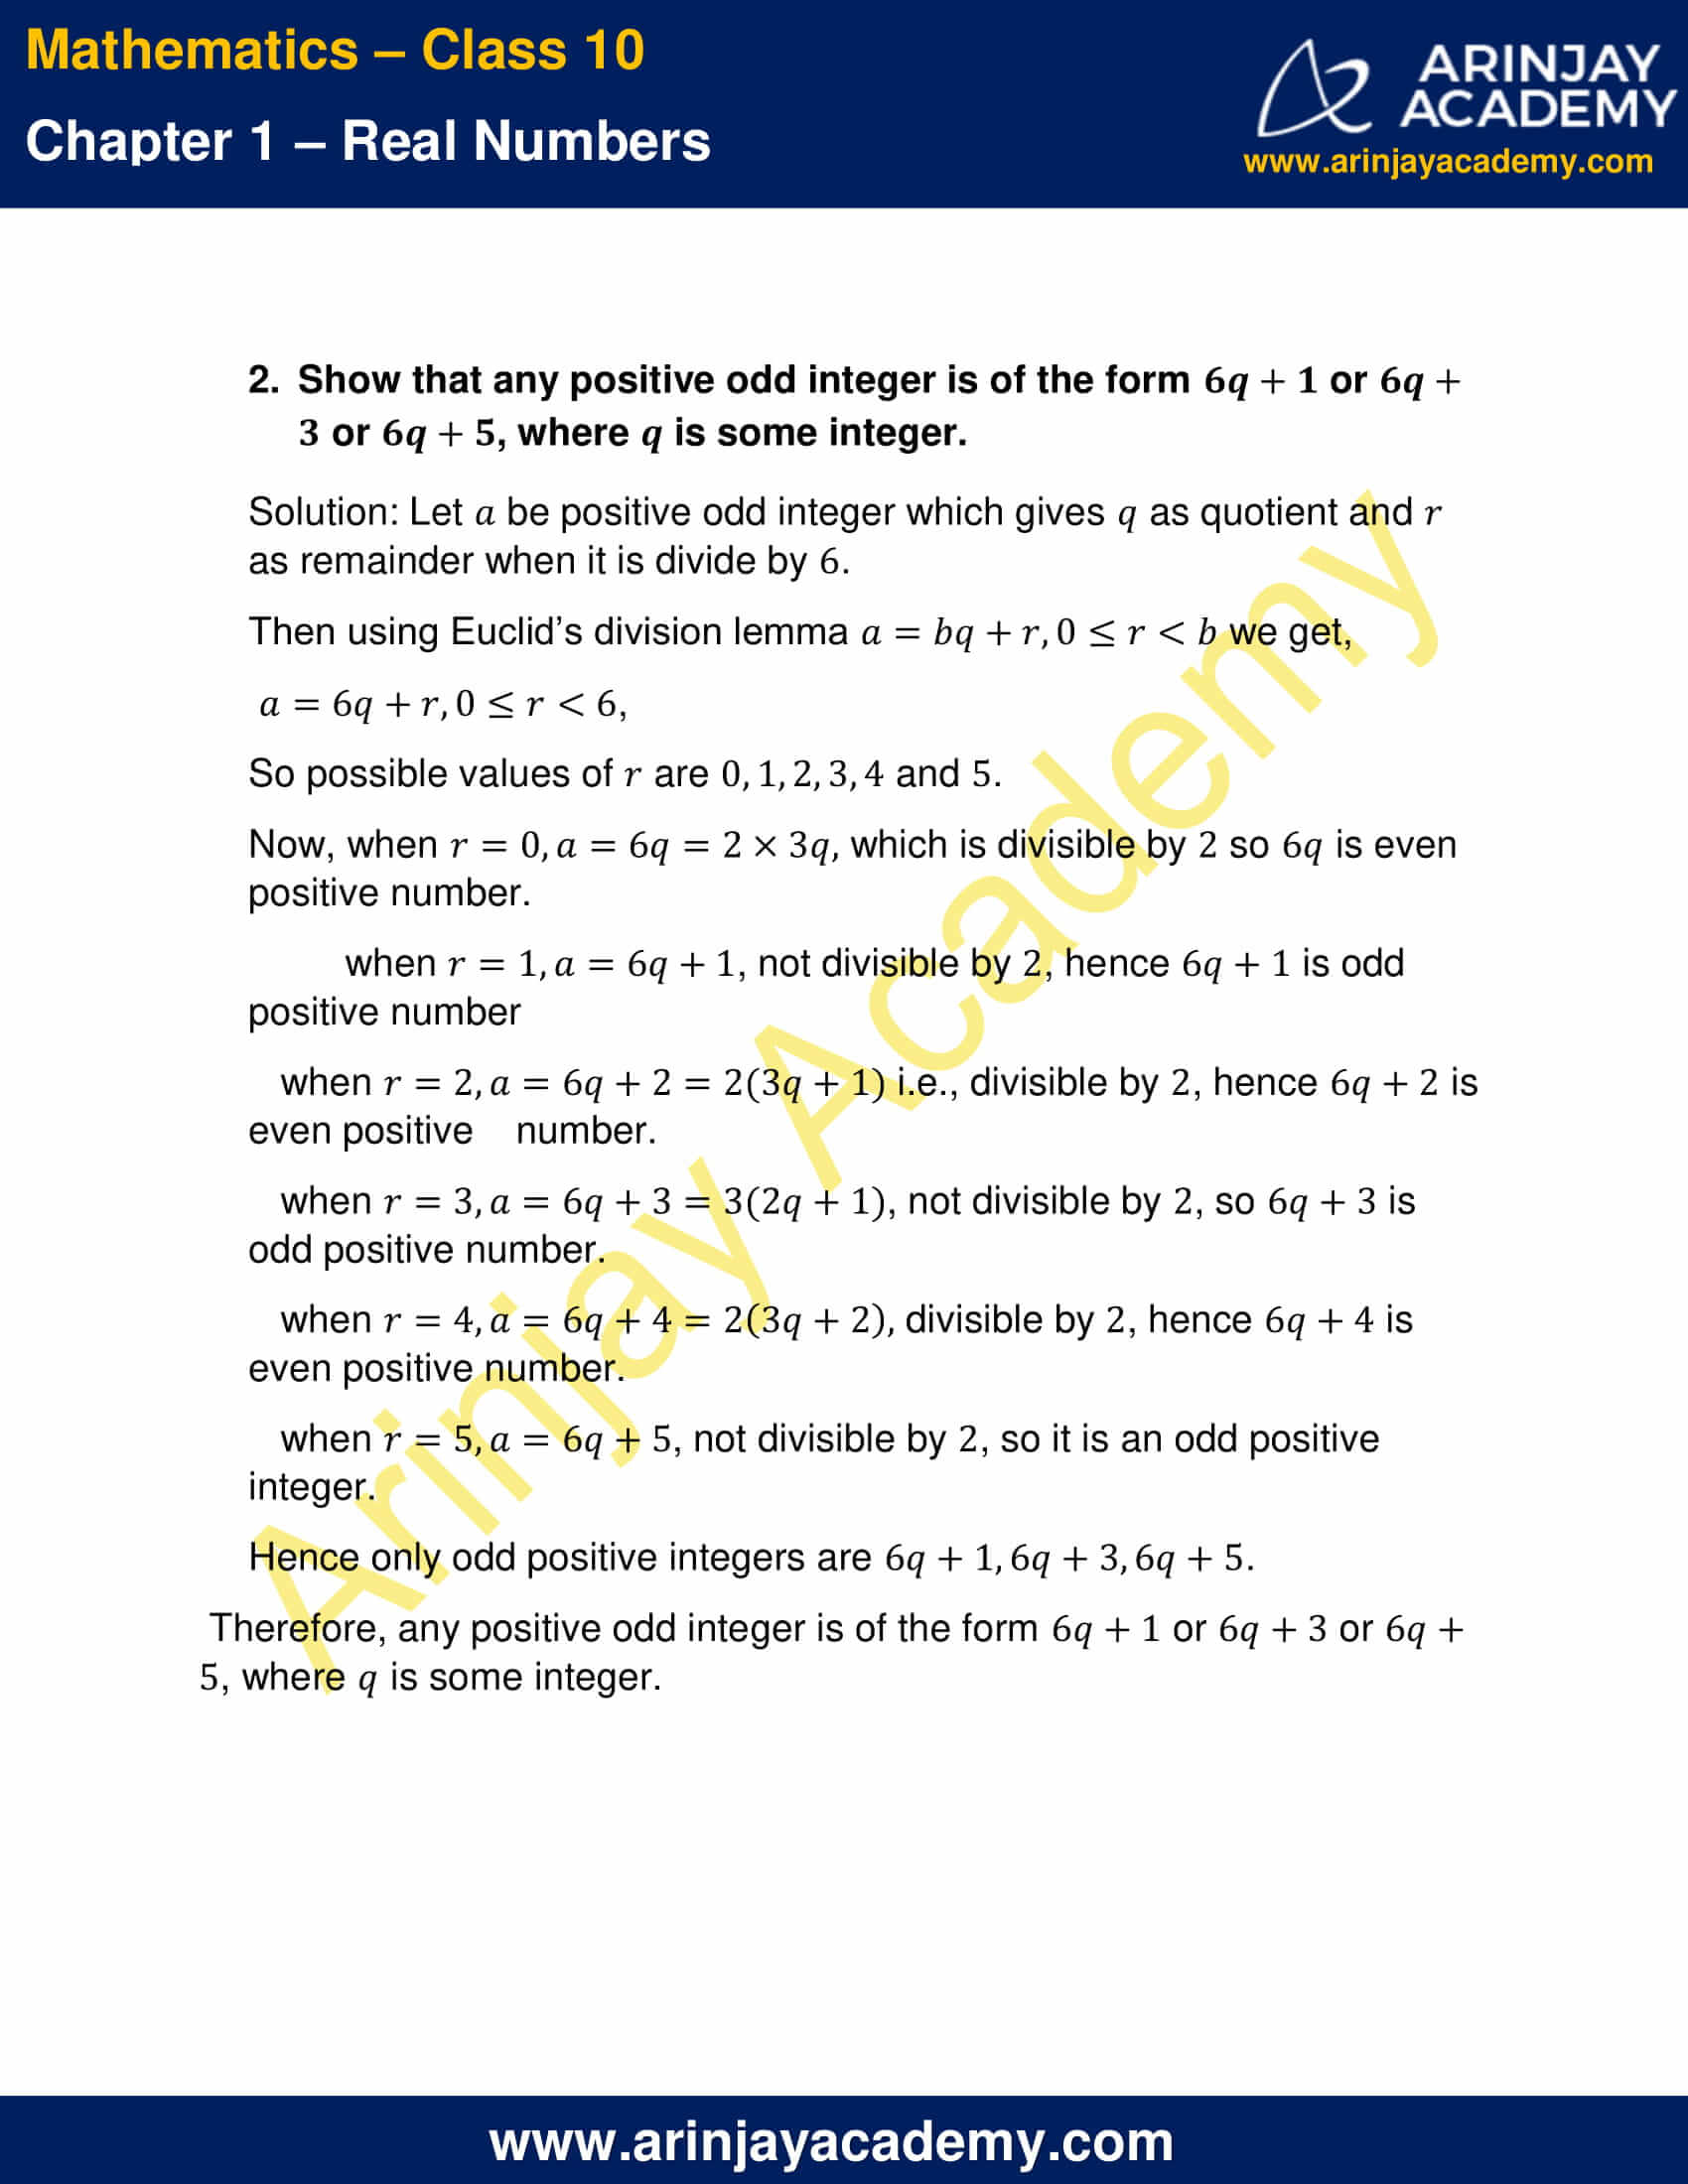 NCERT Solutions For Class 10 Maths Chapter 1 Exercise 1.1 part 2